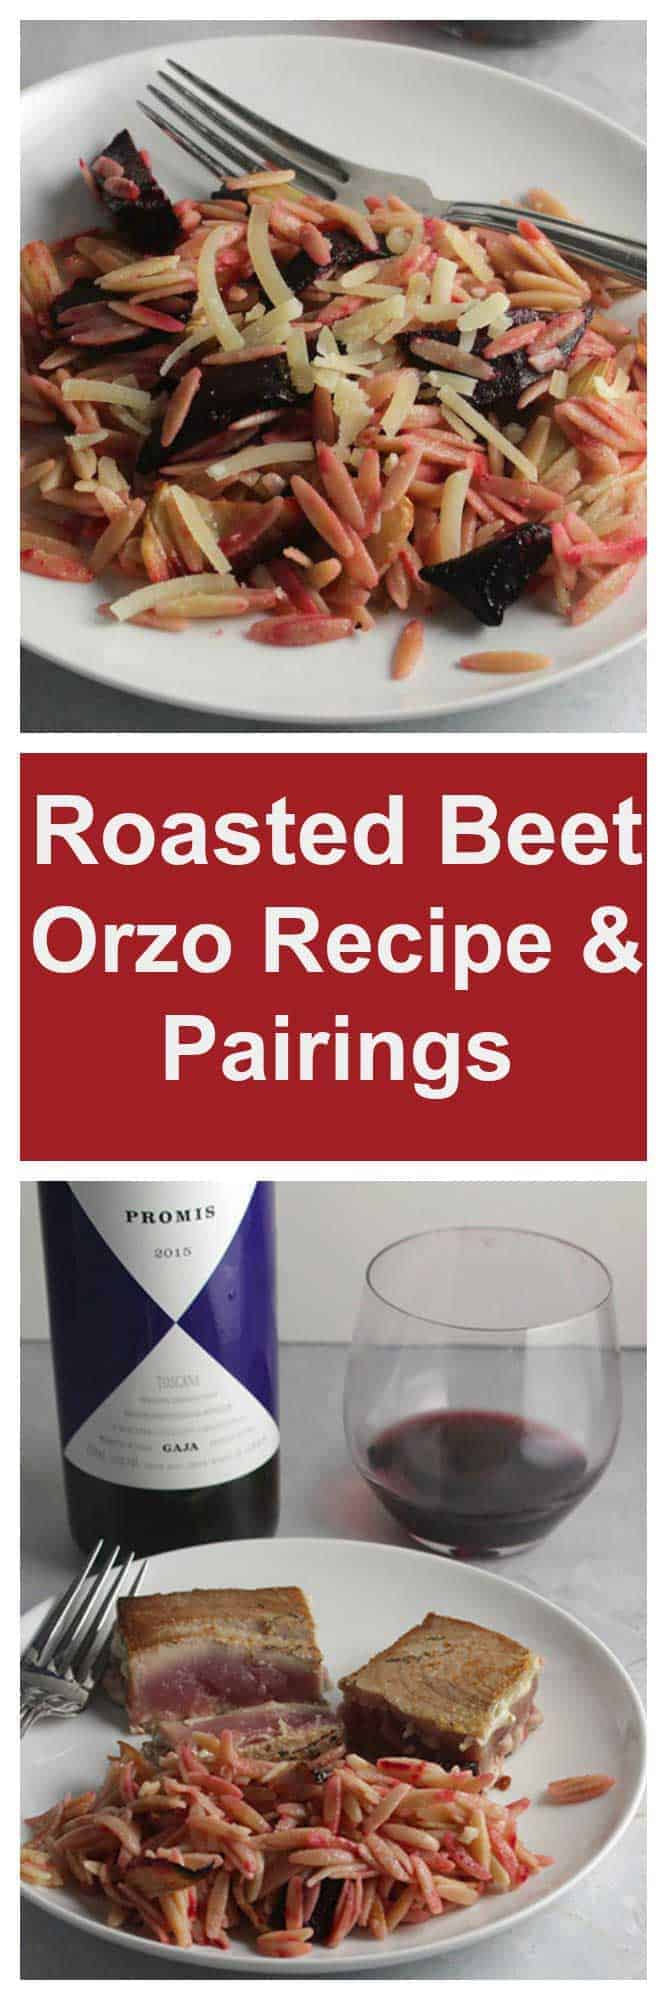 two images of roasted beet orzo. bottom image, orzo served with tuna and red wine.